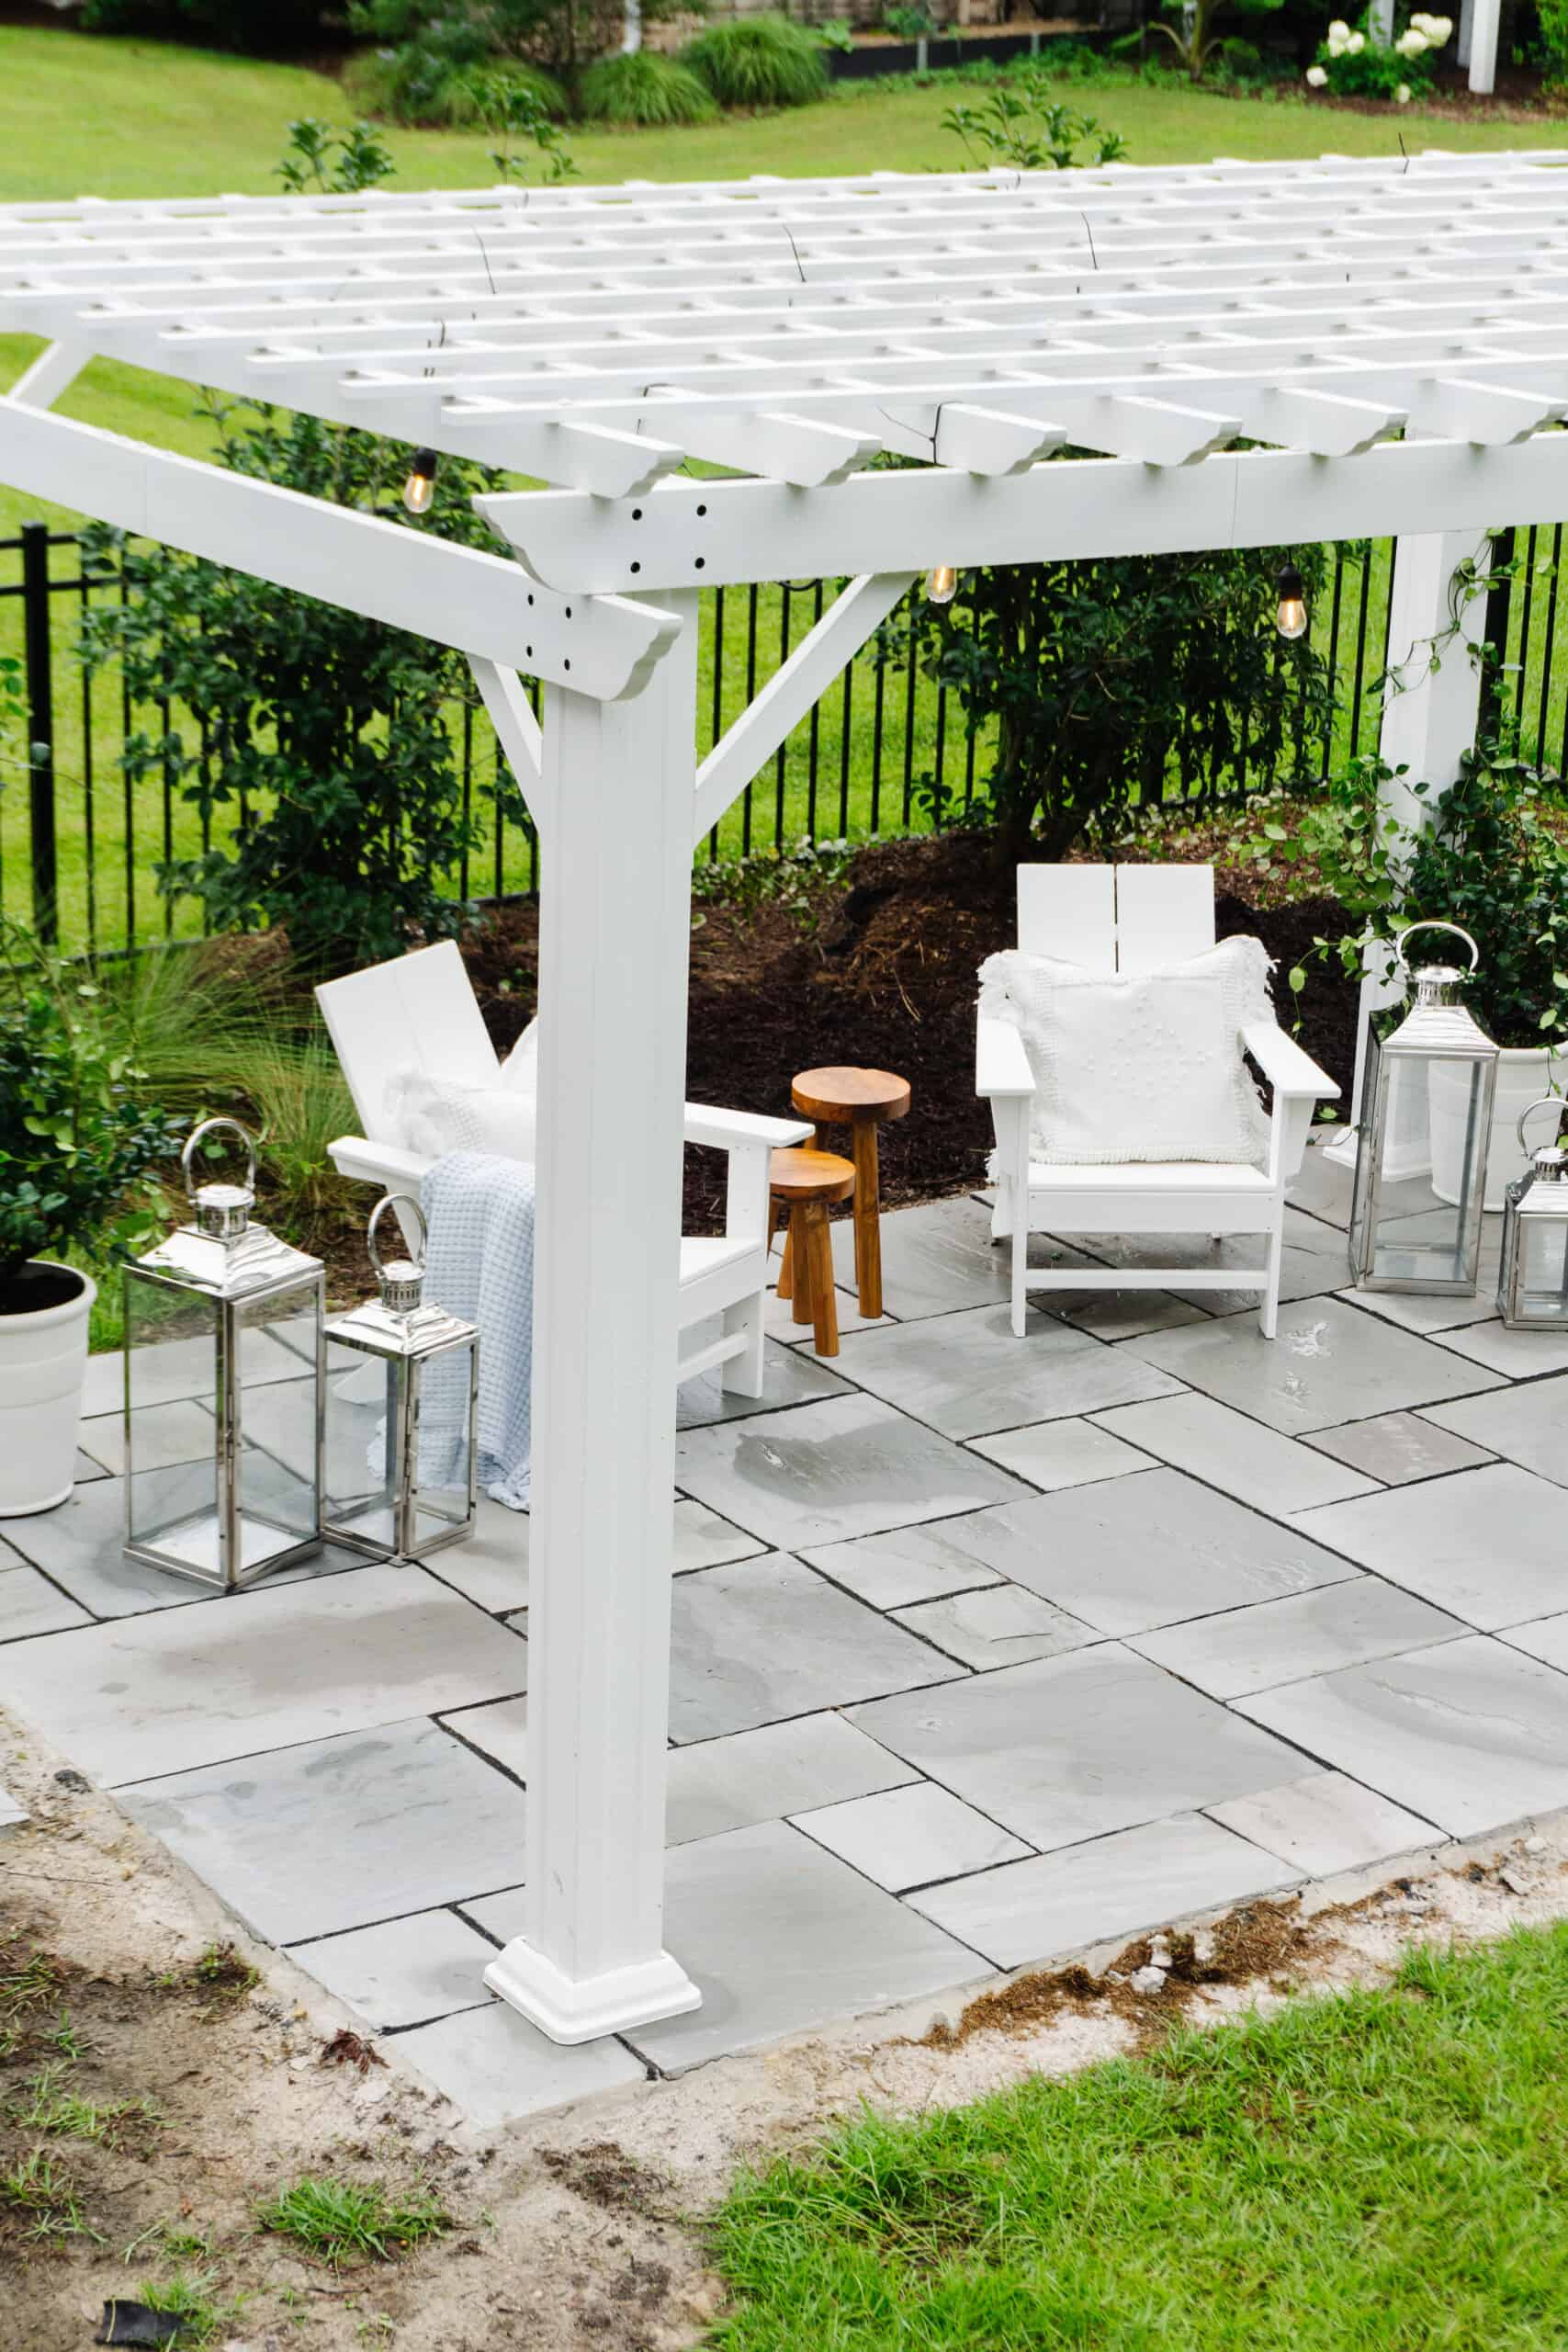 Patio with white pergola and two Adirondack chairs.